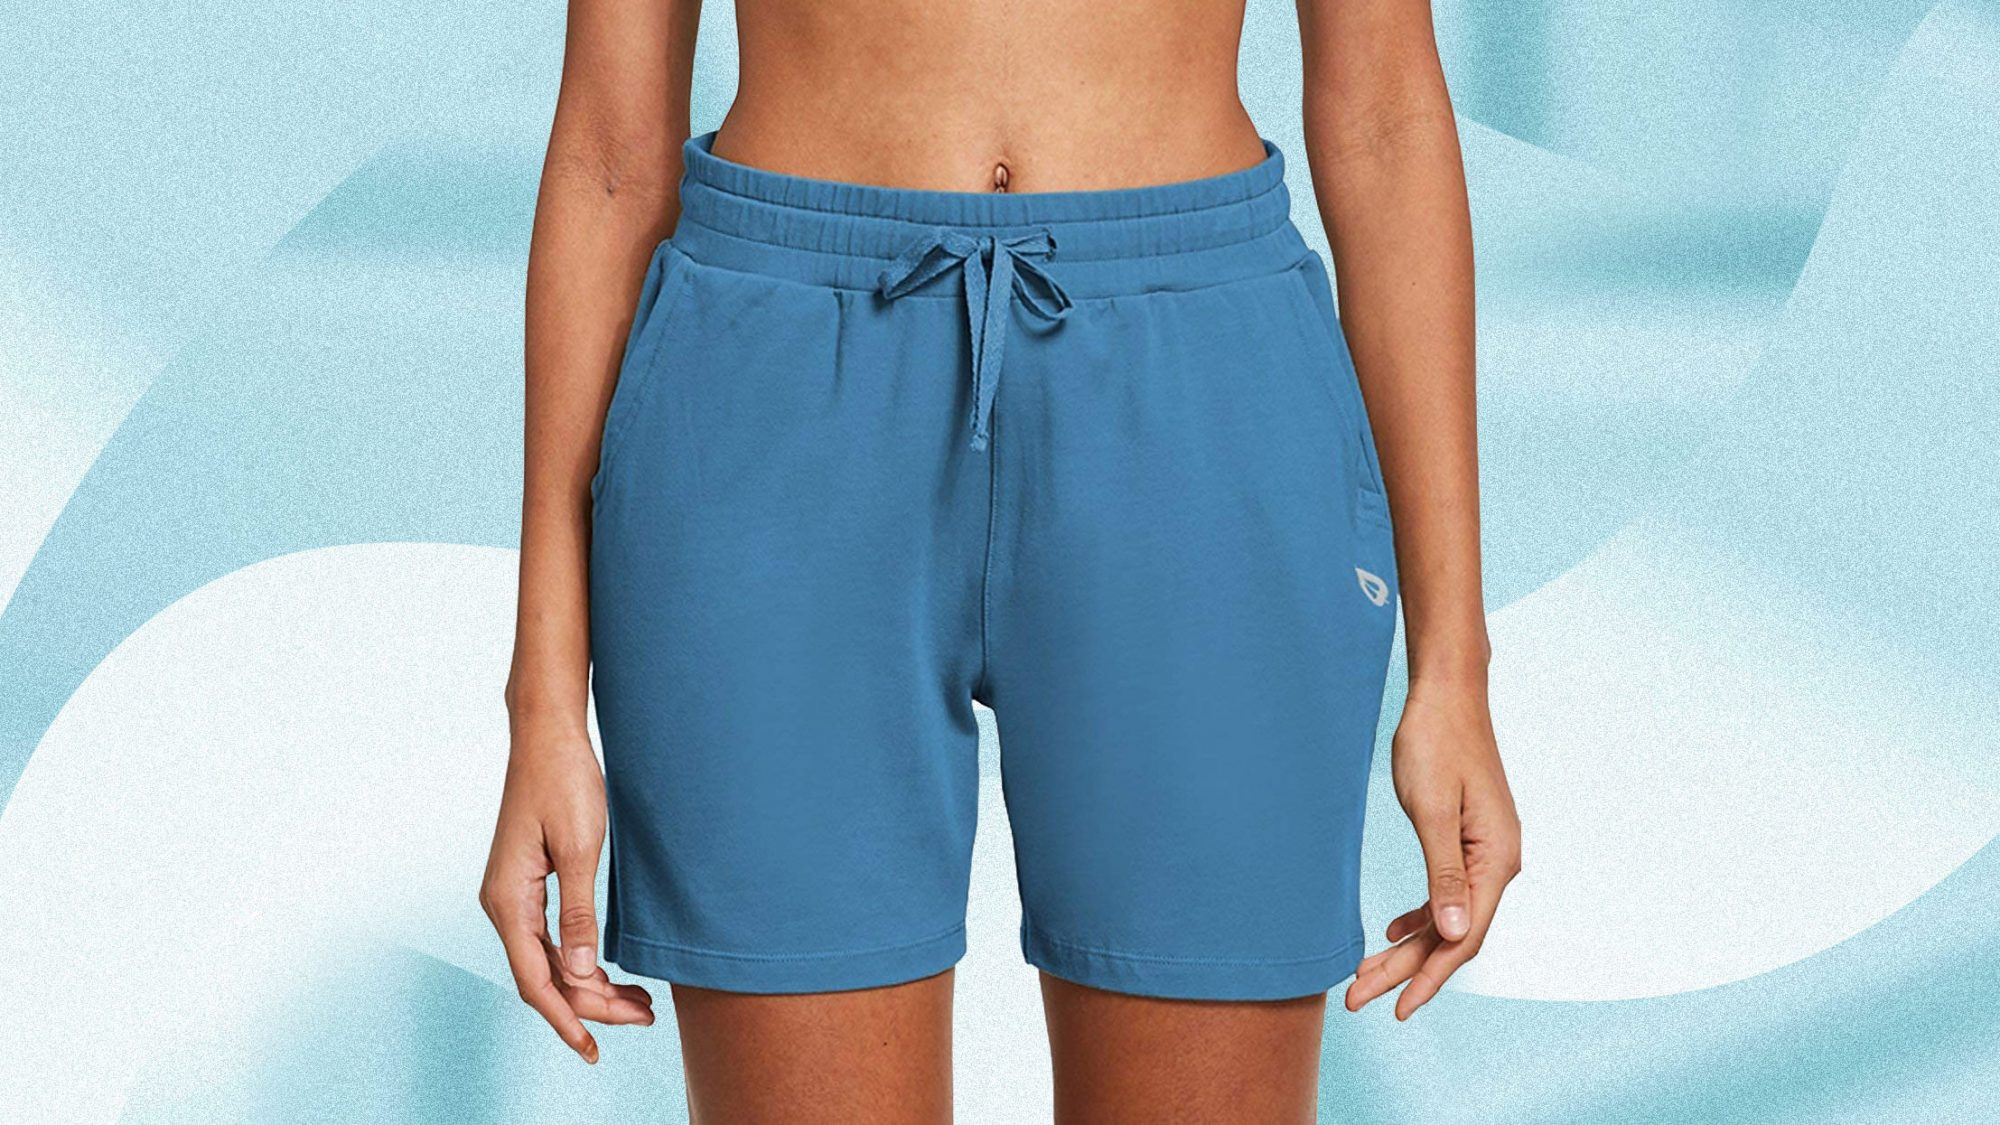 Baleaf Shorts amazon